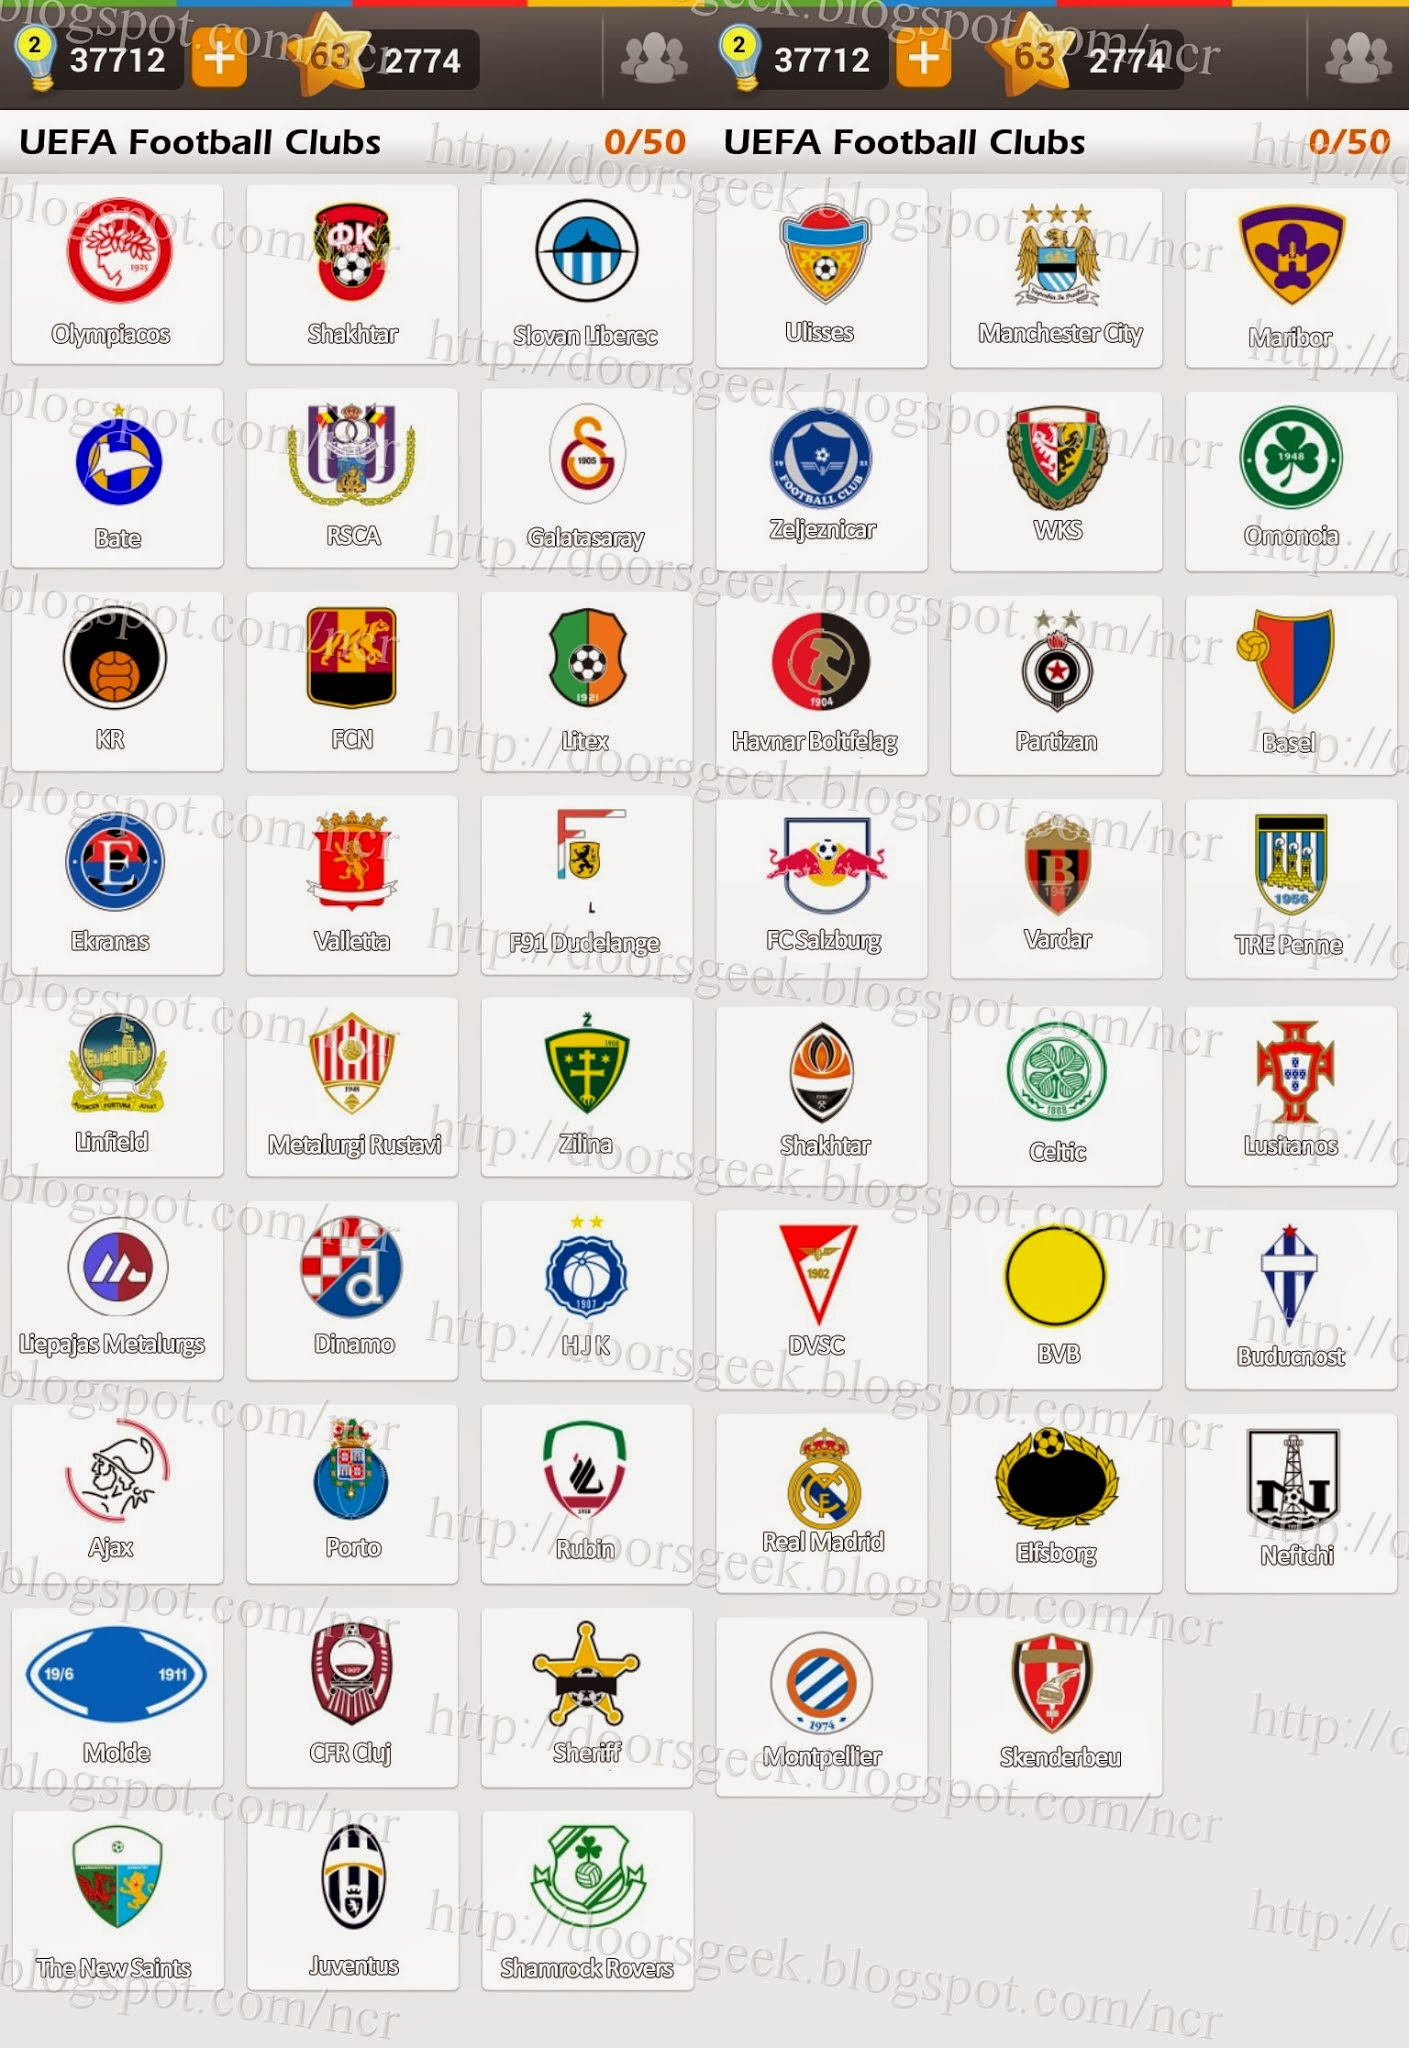 Populaire Logo Game: Guess the Brand [Bonus] UEFA Football Clubs ~ Doors Geek QY68